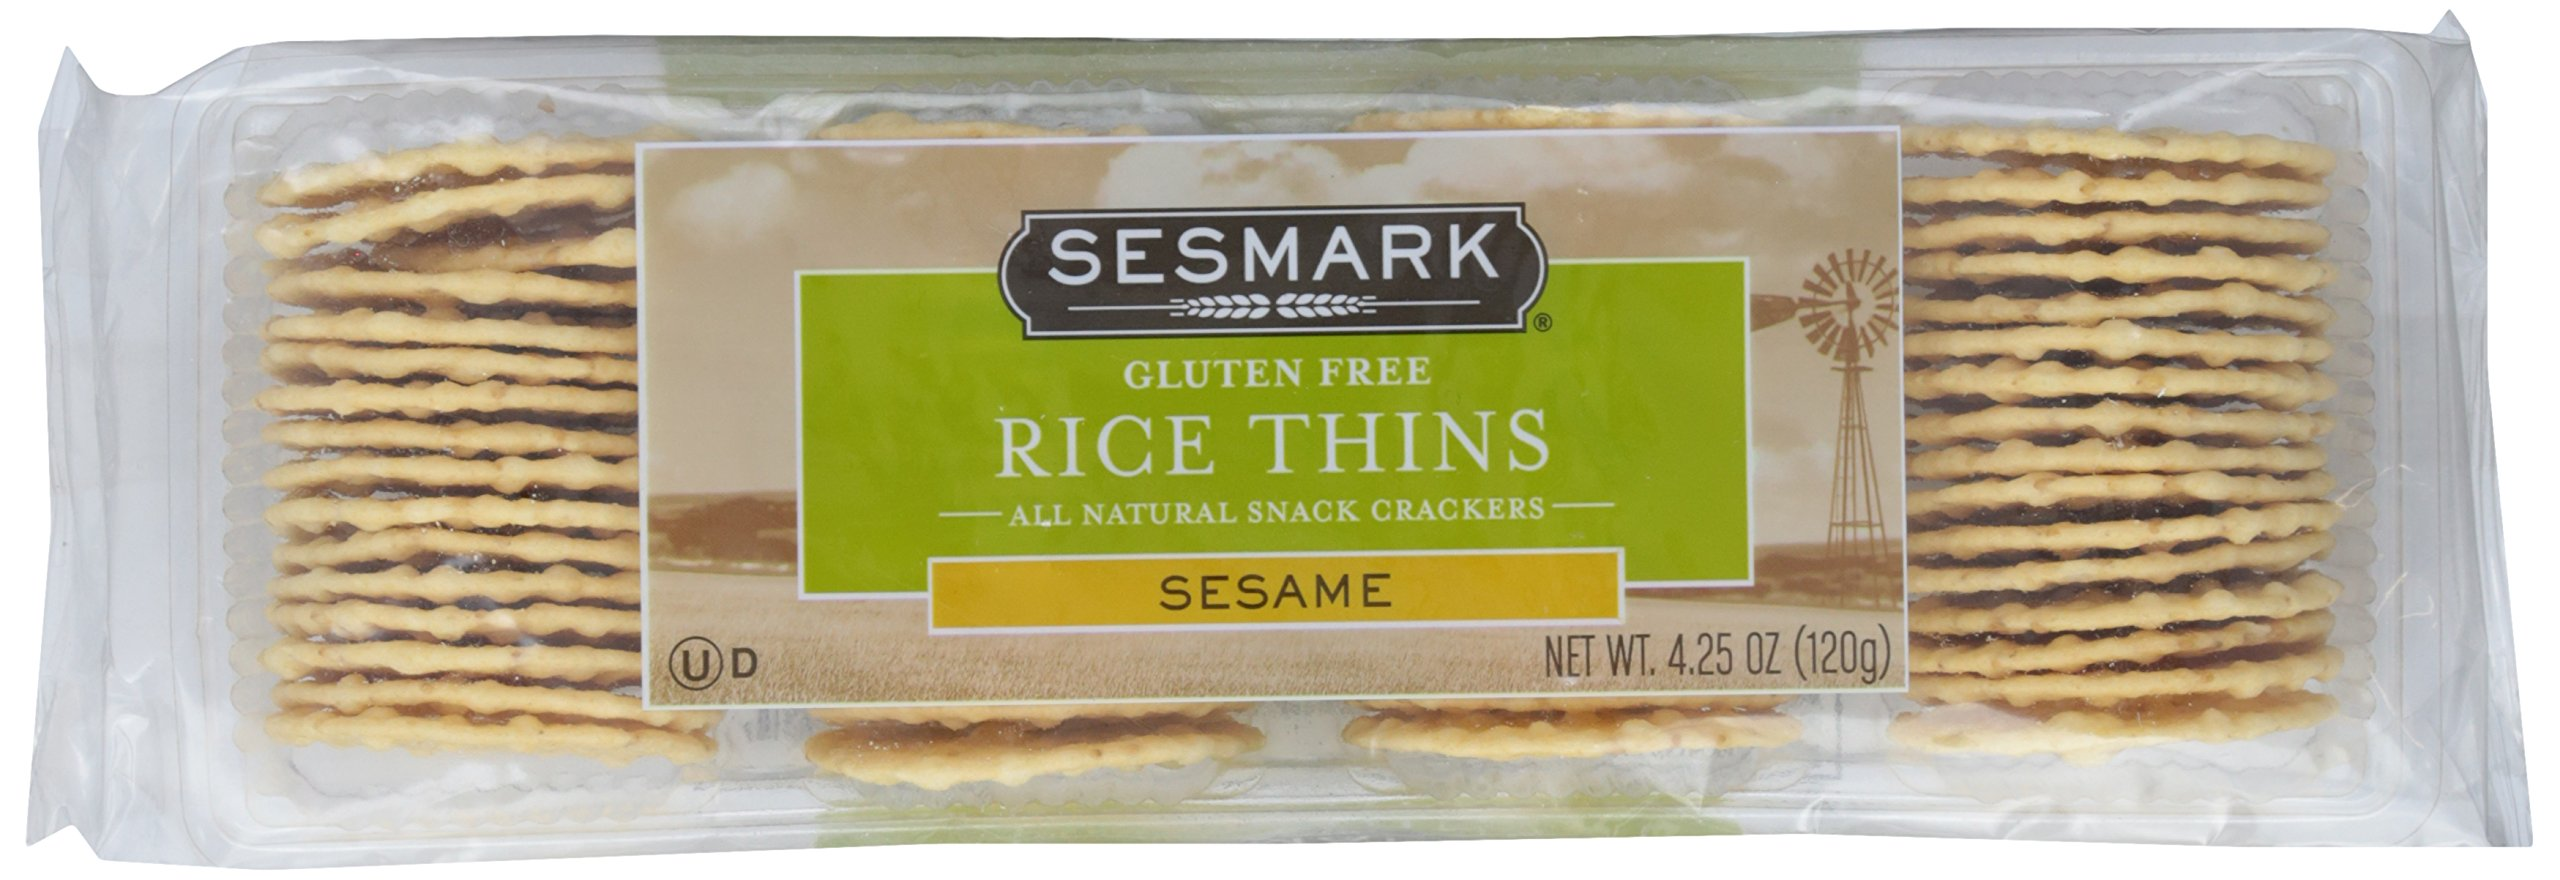 Sesmark, Sesame Rice Thins, 4.25 oz